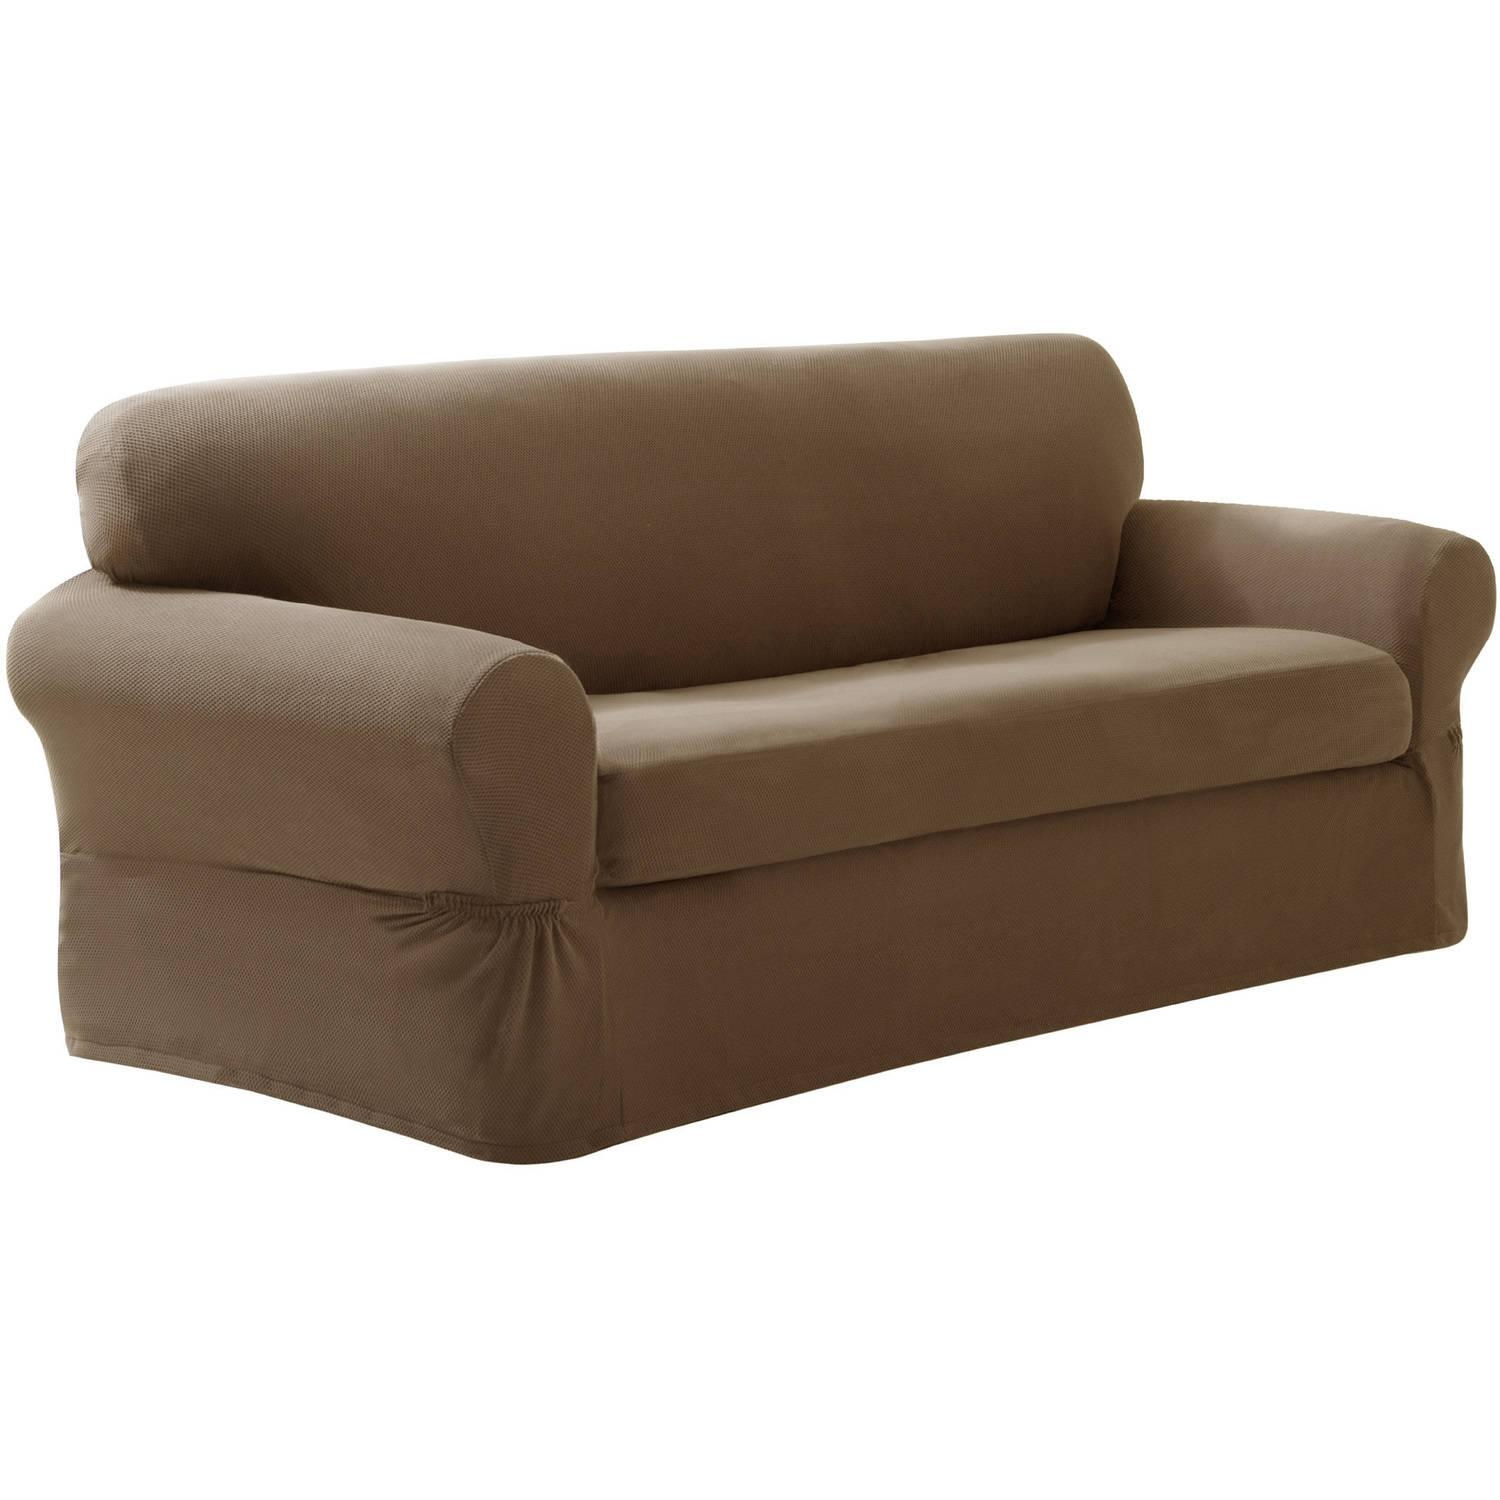 sectional sofa slipcovers walmart broyhill monica 20 best collection of stretch slipcover sofas ideas